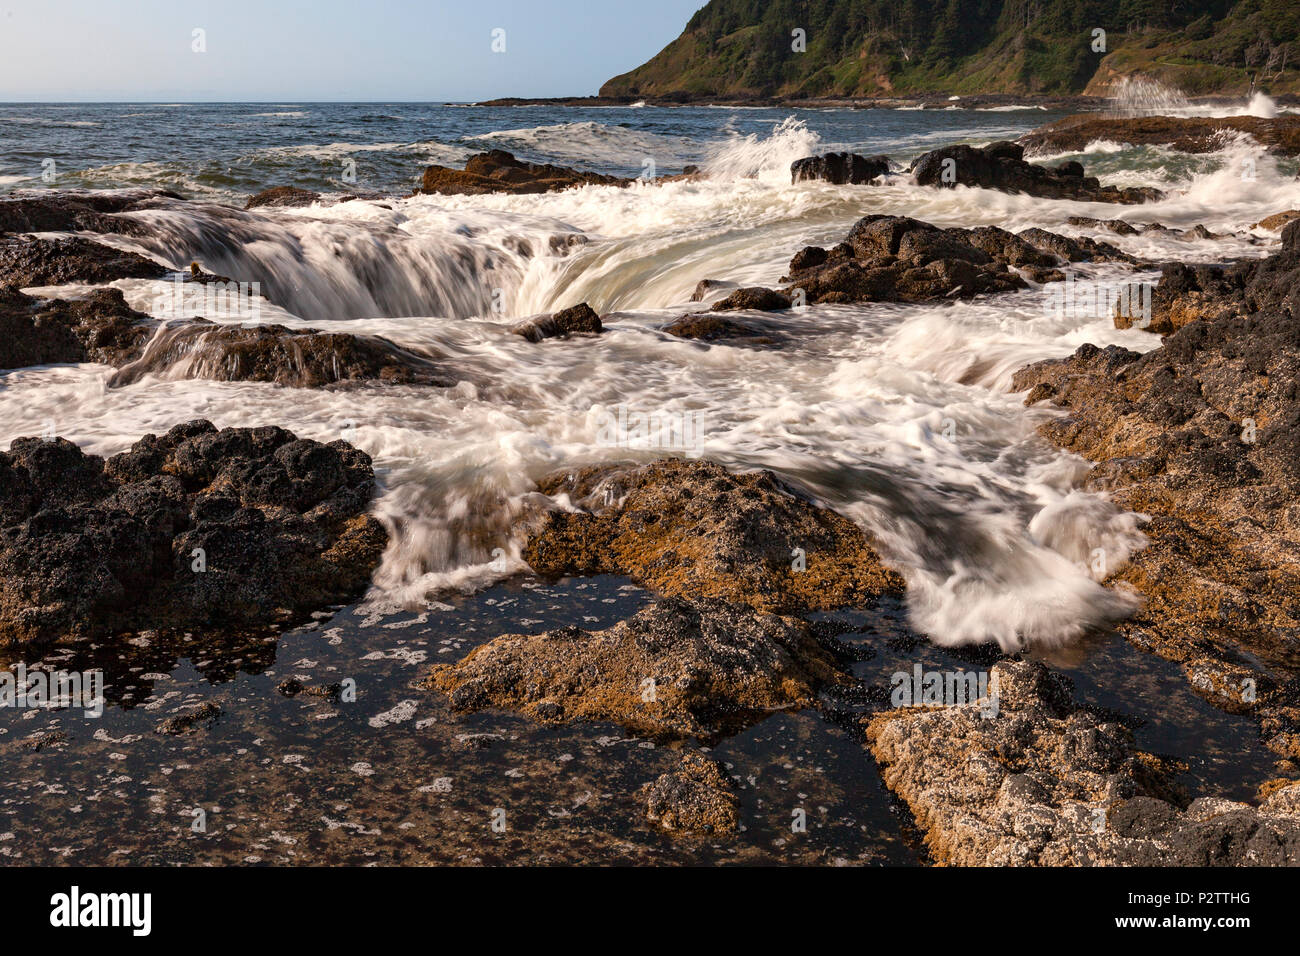 Water is drawn into Thor's Well at Cape Perpetua Scenic Area along Oregon's Central Coast south of Yachats. - Stock Image